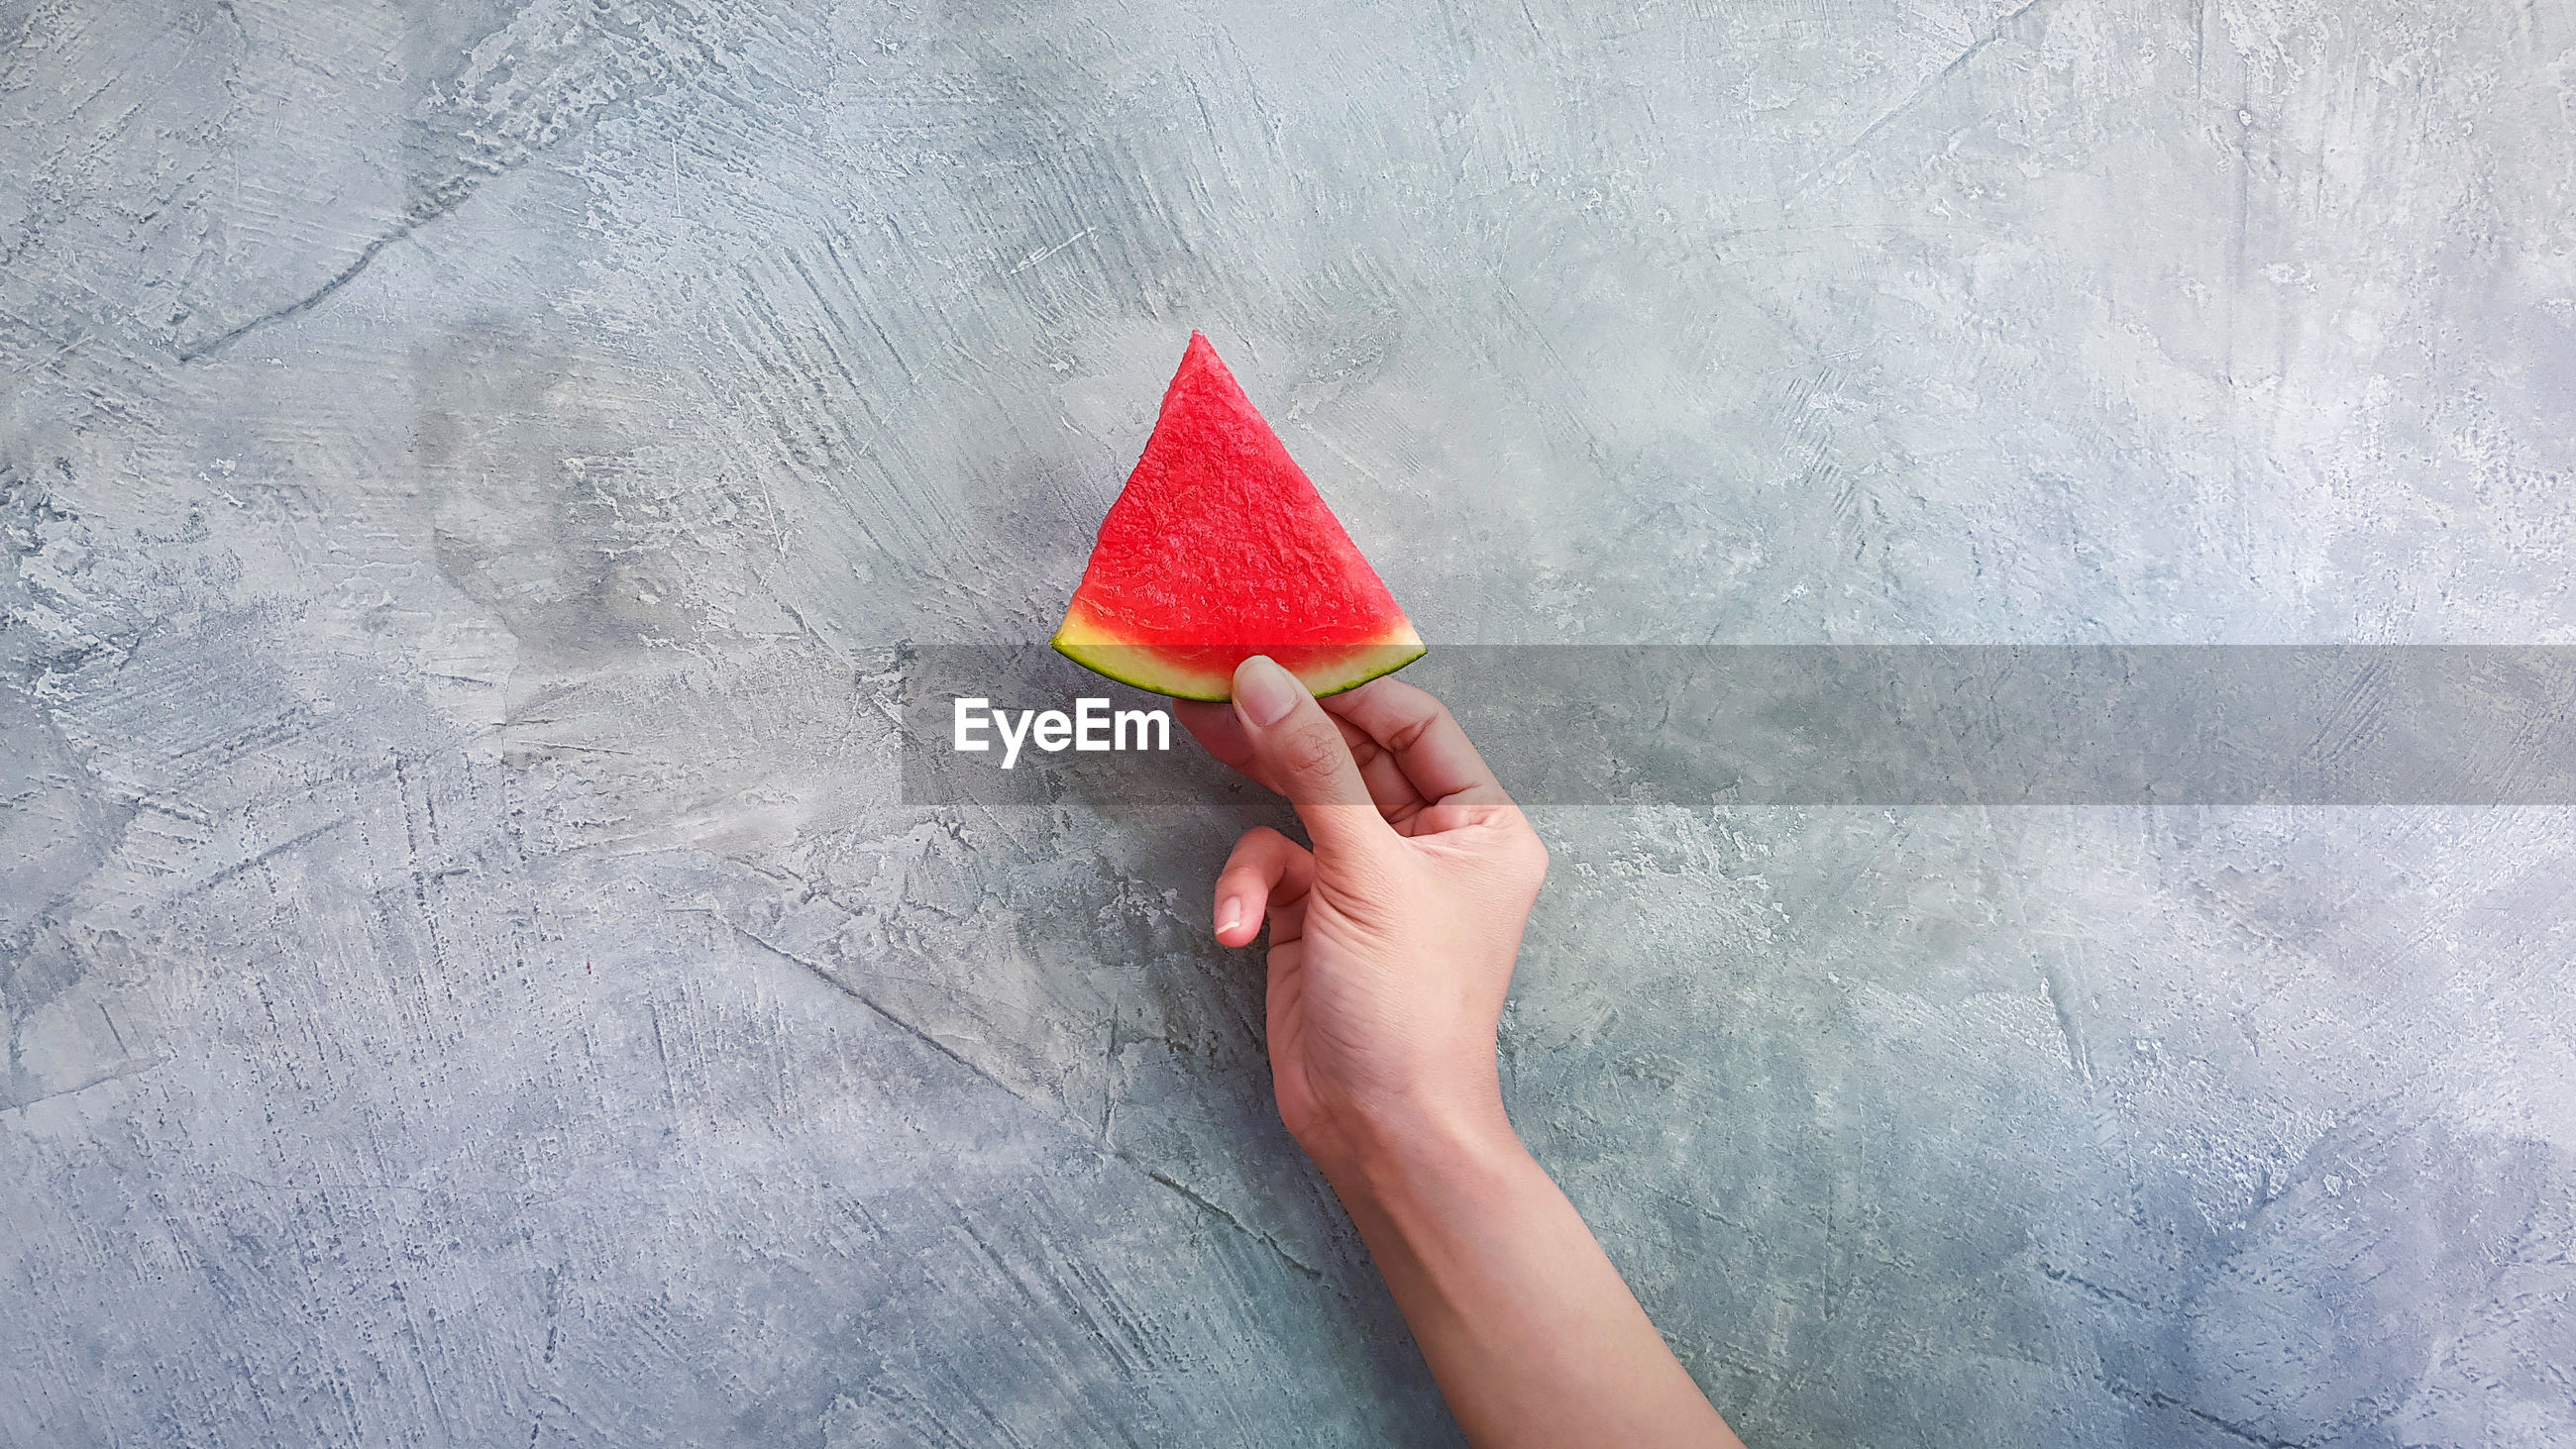 HIGH ANGLE VIEW OF HAND HOLDING RED FRUIT